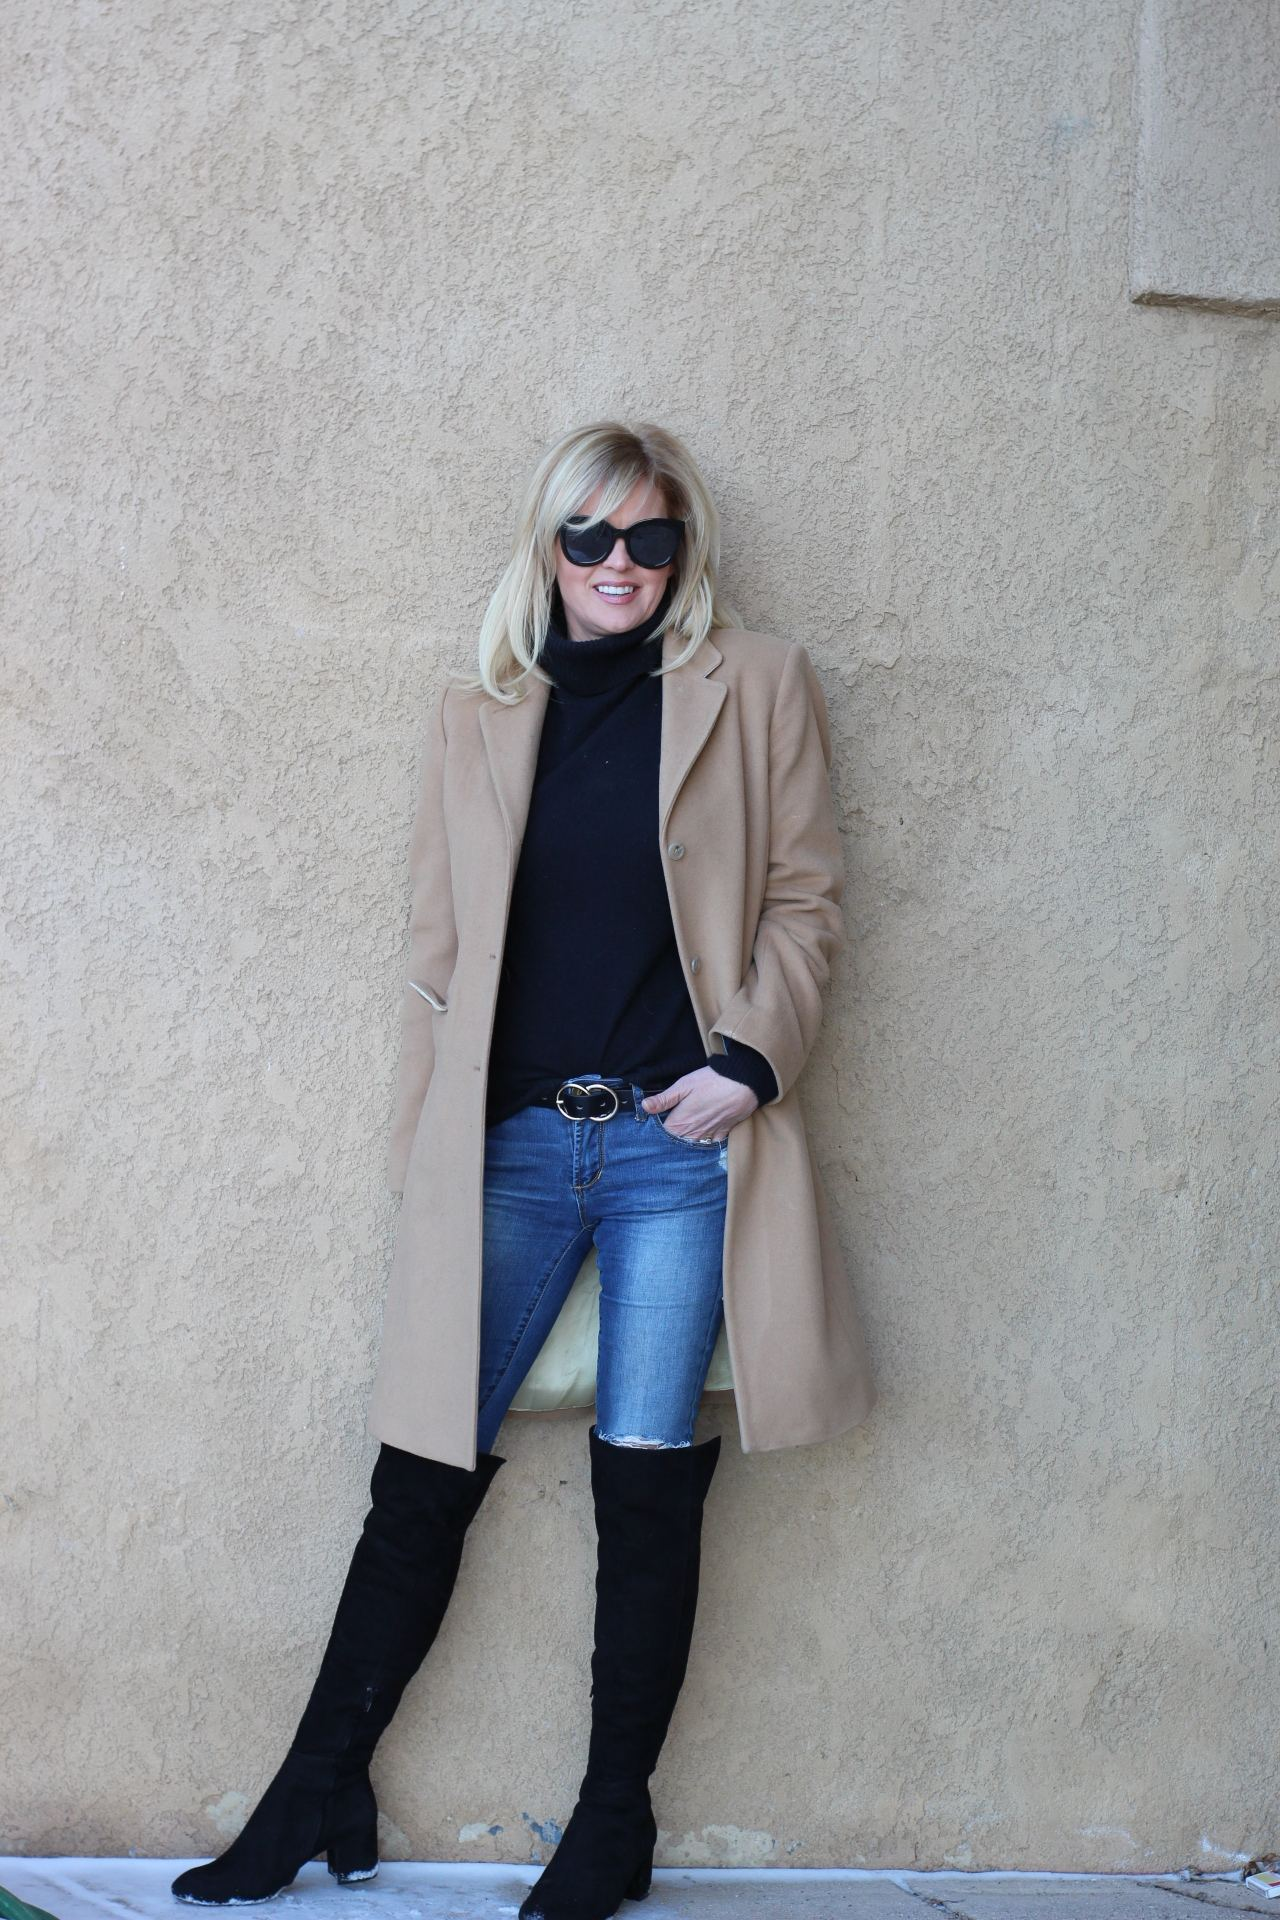 The winter outfit to get you through the rest of the winter!